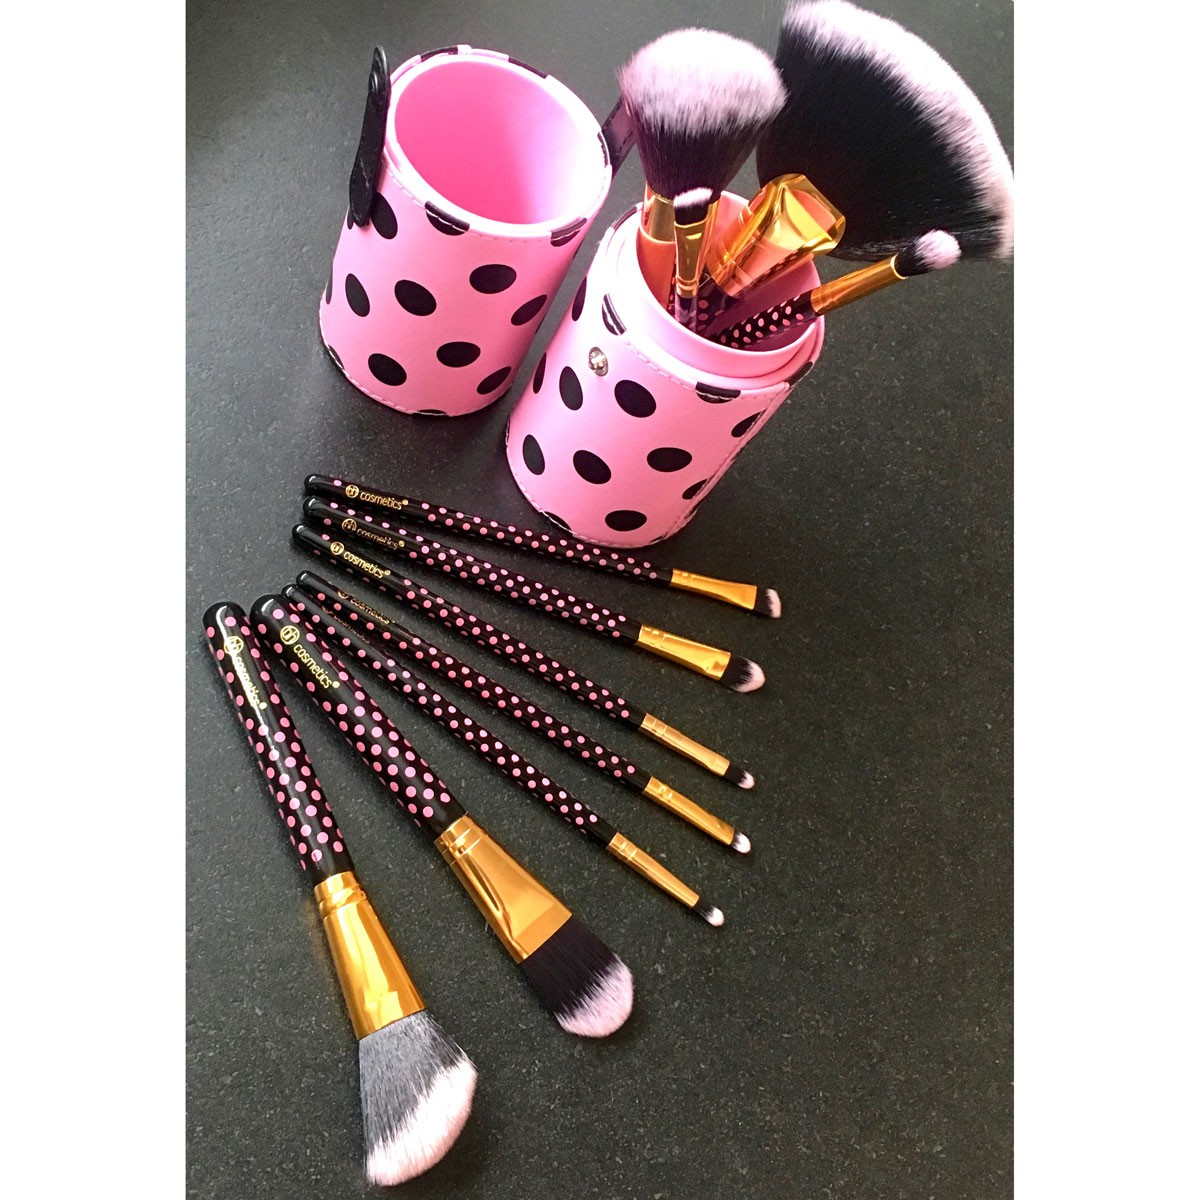 11-Teiliges Pinsel-Set - Pink-A-Dot